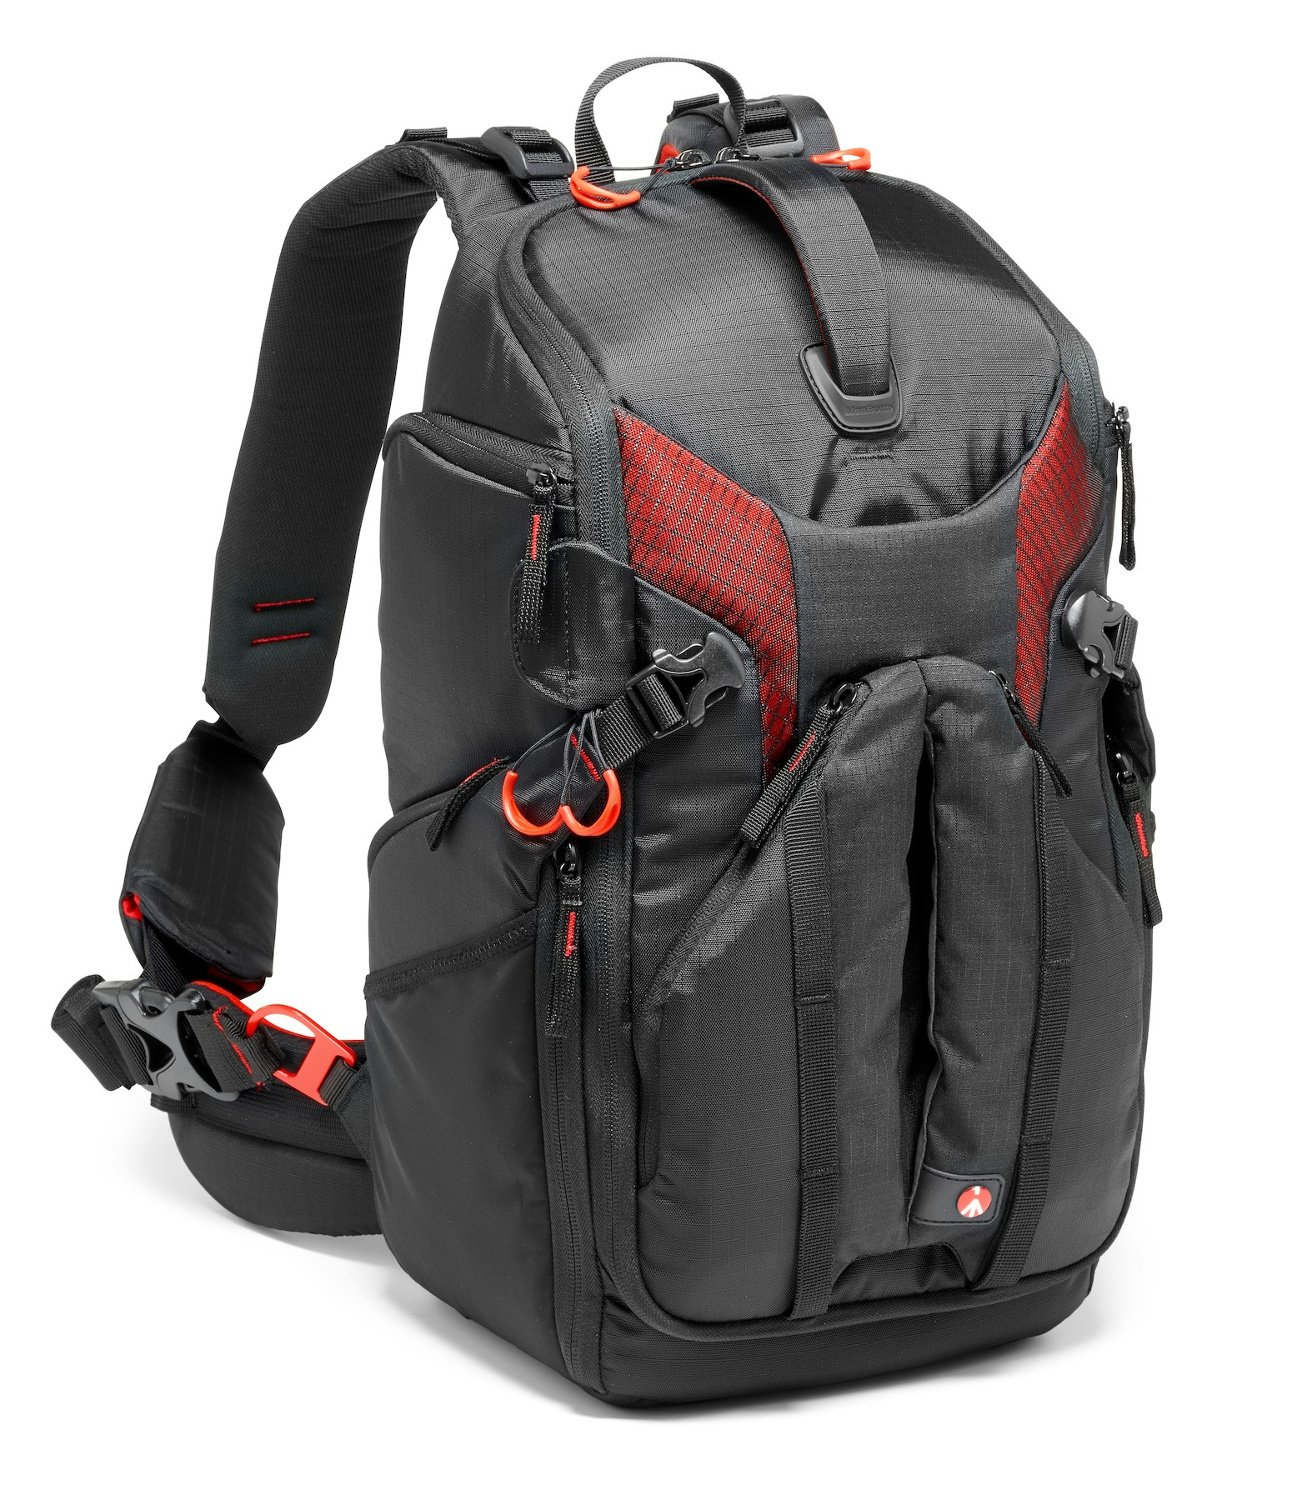 Professional Camera Backpack for DSLRs or Canon C100